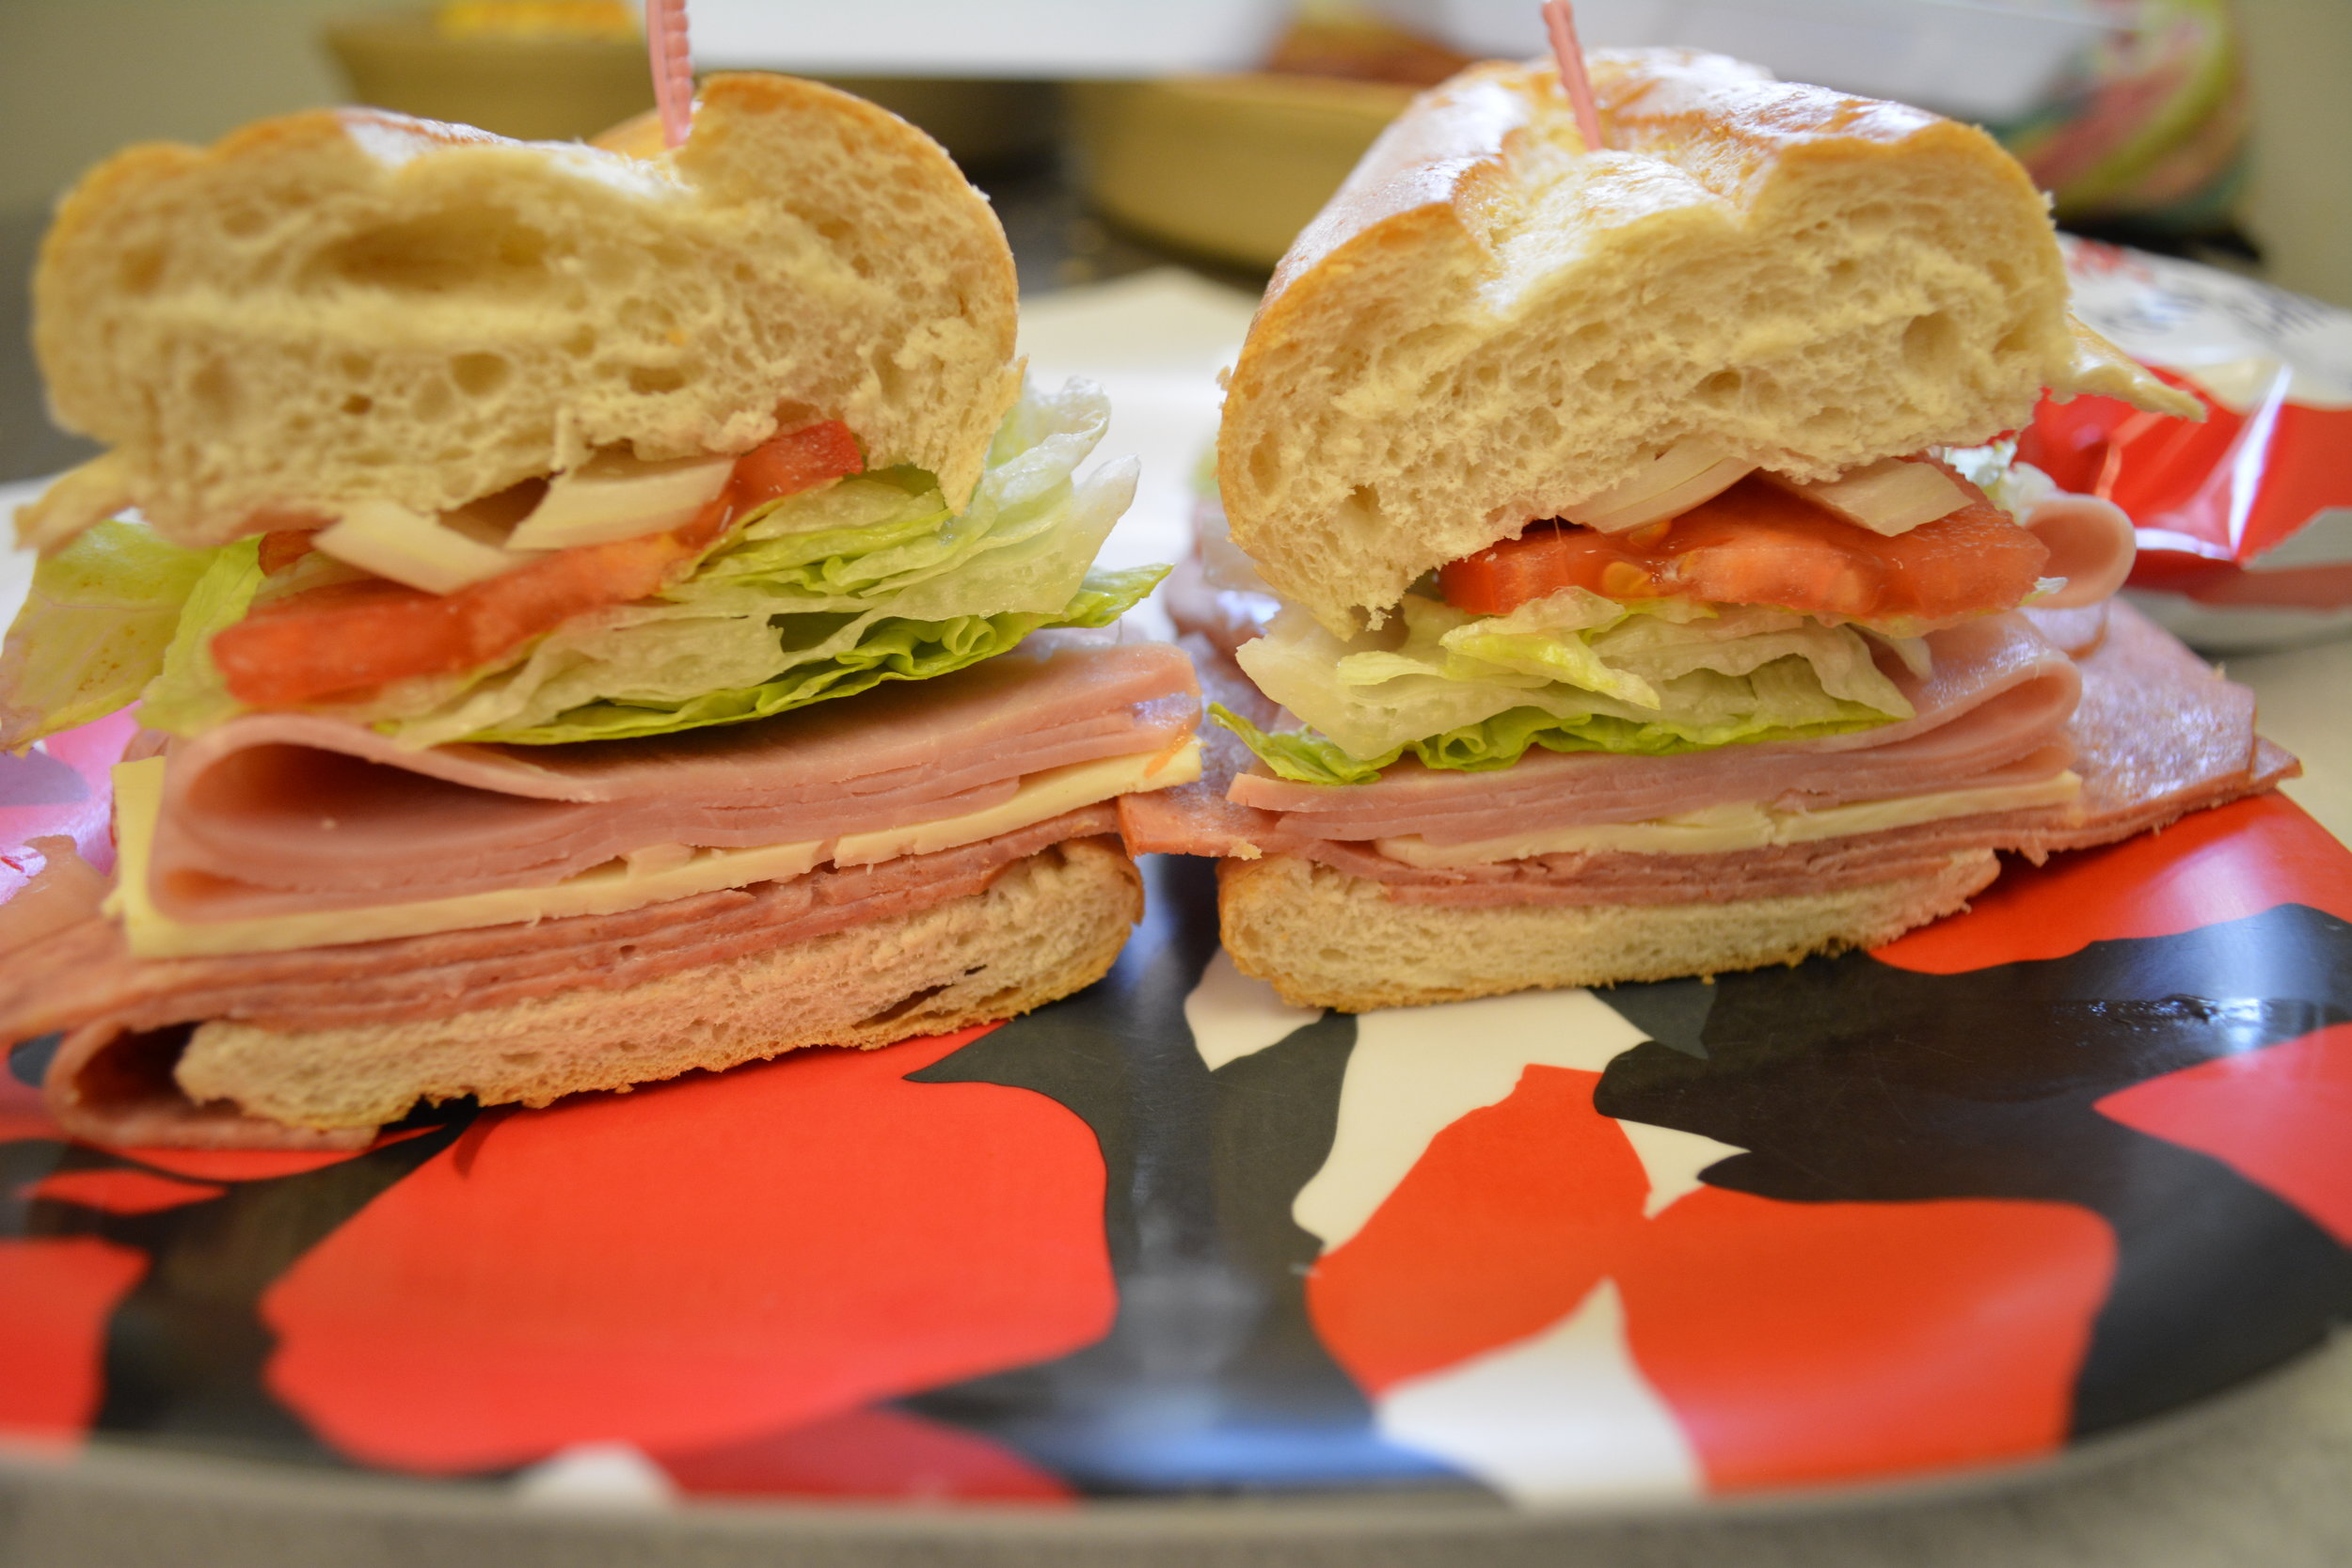 T&C Submarine - Ham, salami, cheese, onion, lettuce, tomato with a special seasoning with mayonnaise or Greek dressing